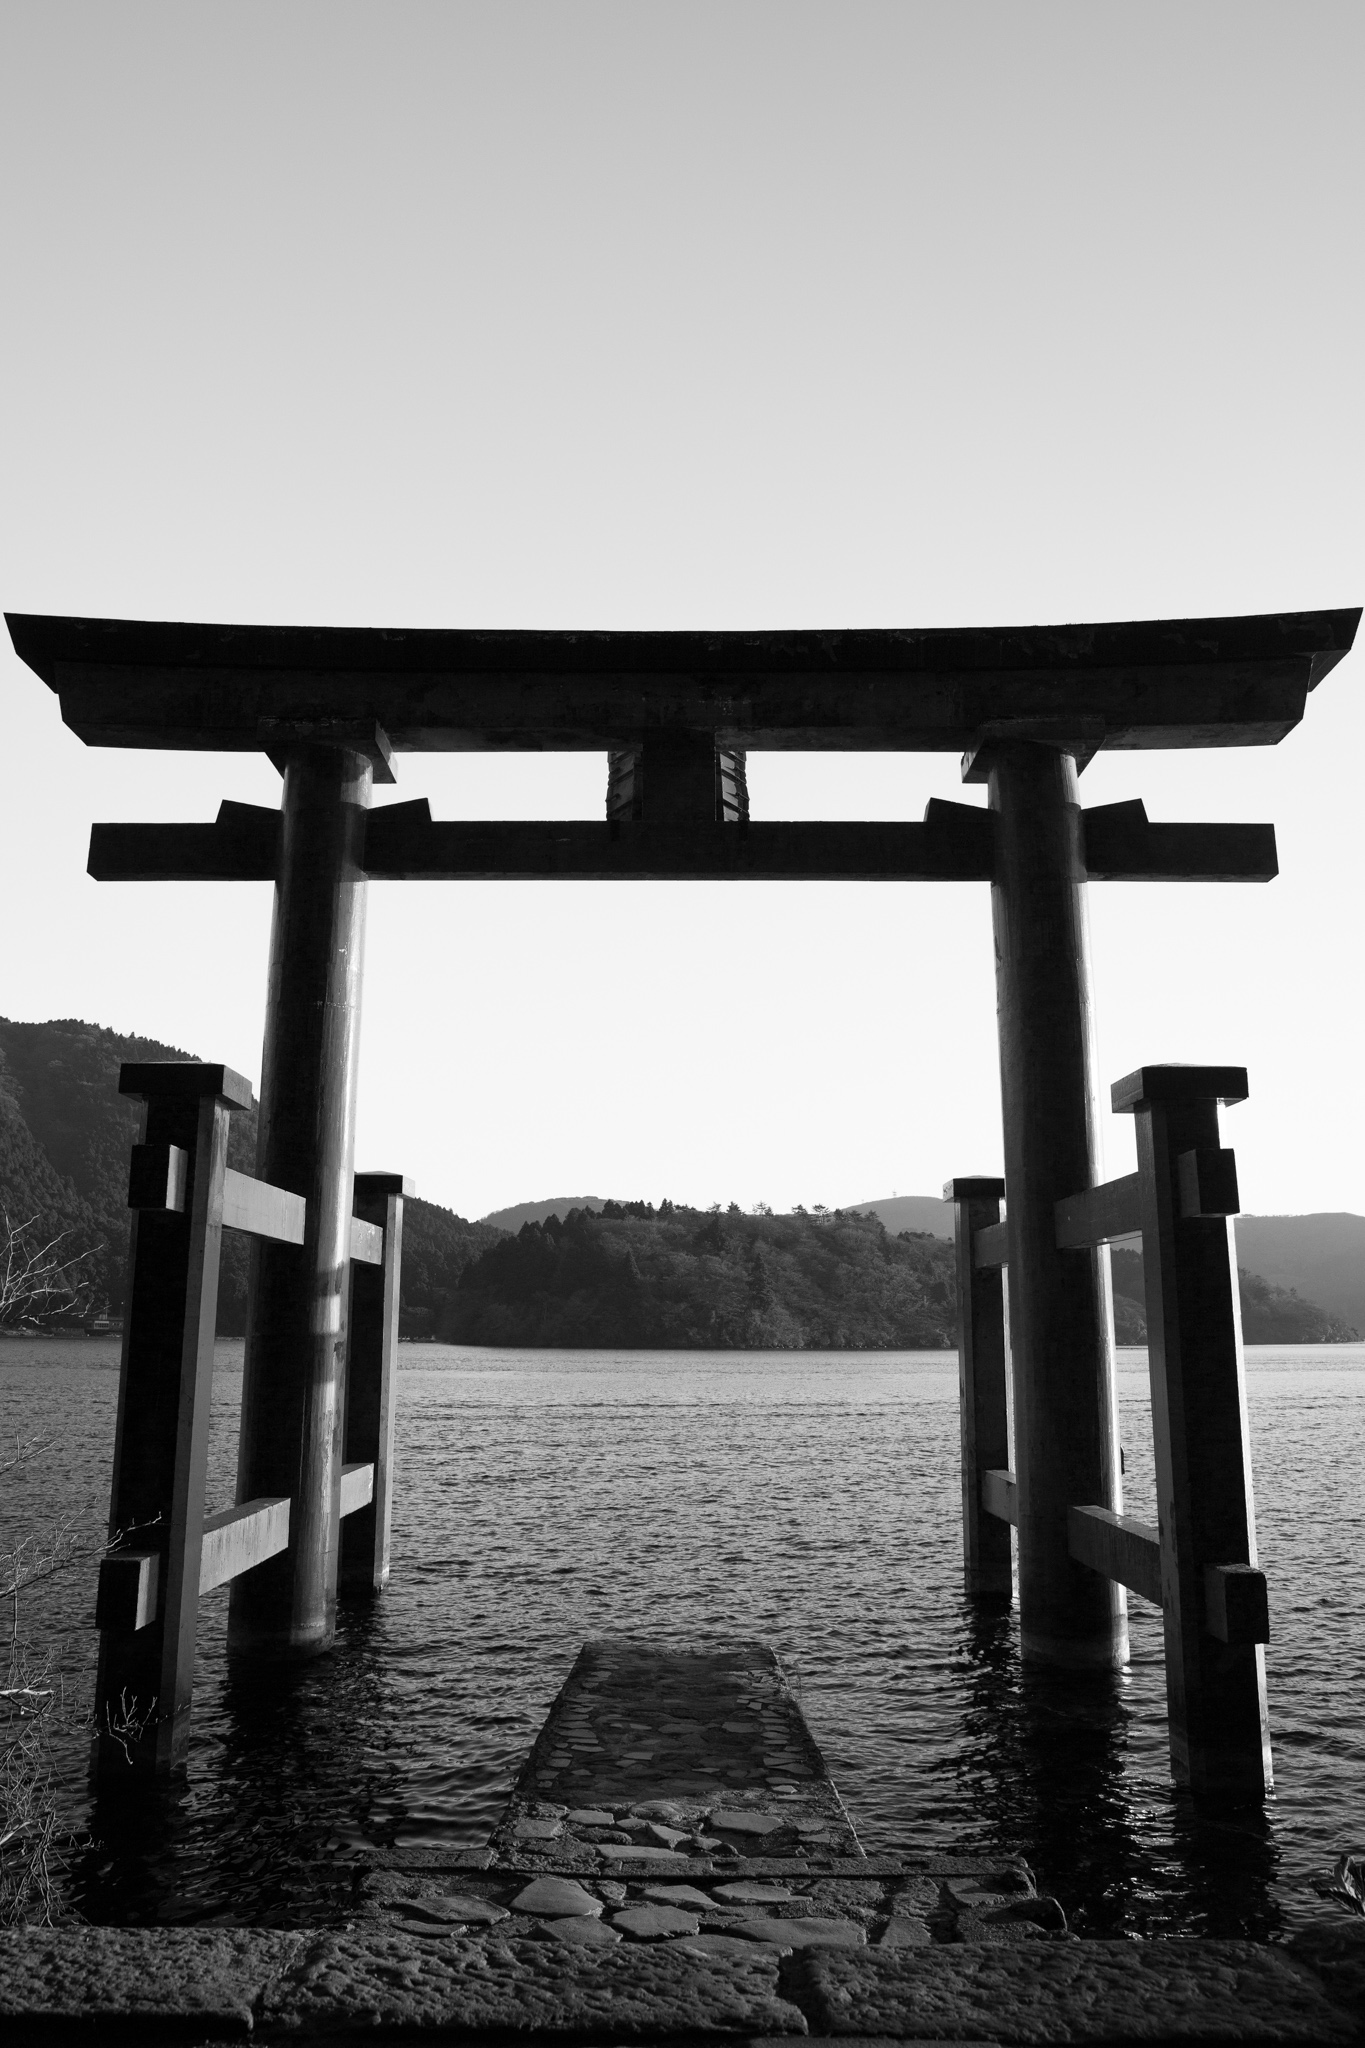 6905-japan-nature-classic-perspective.jpg